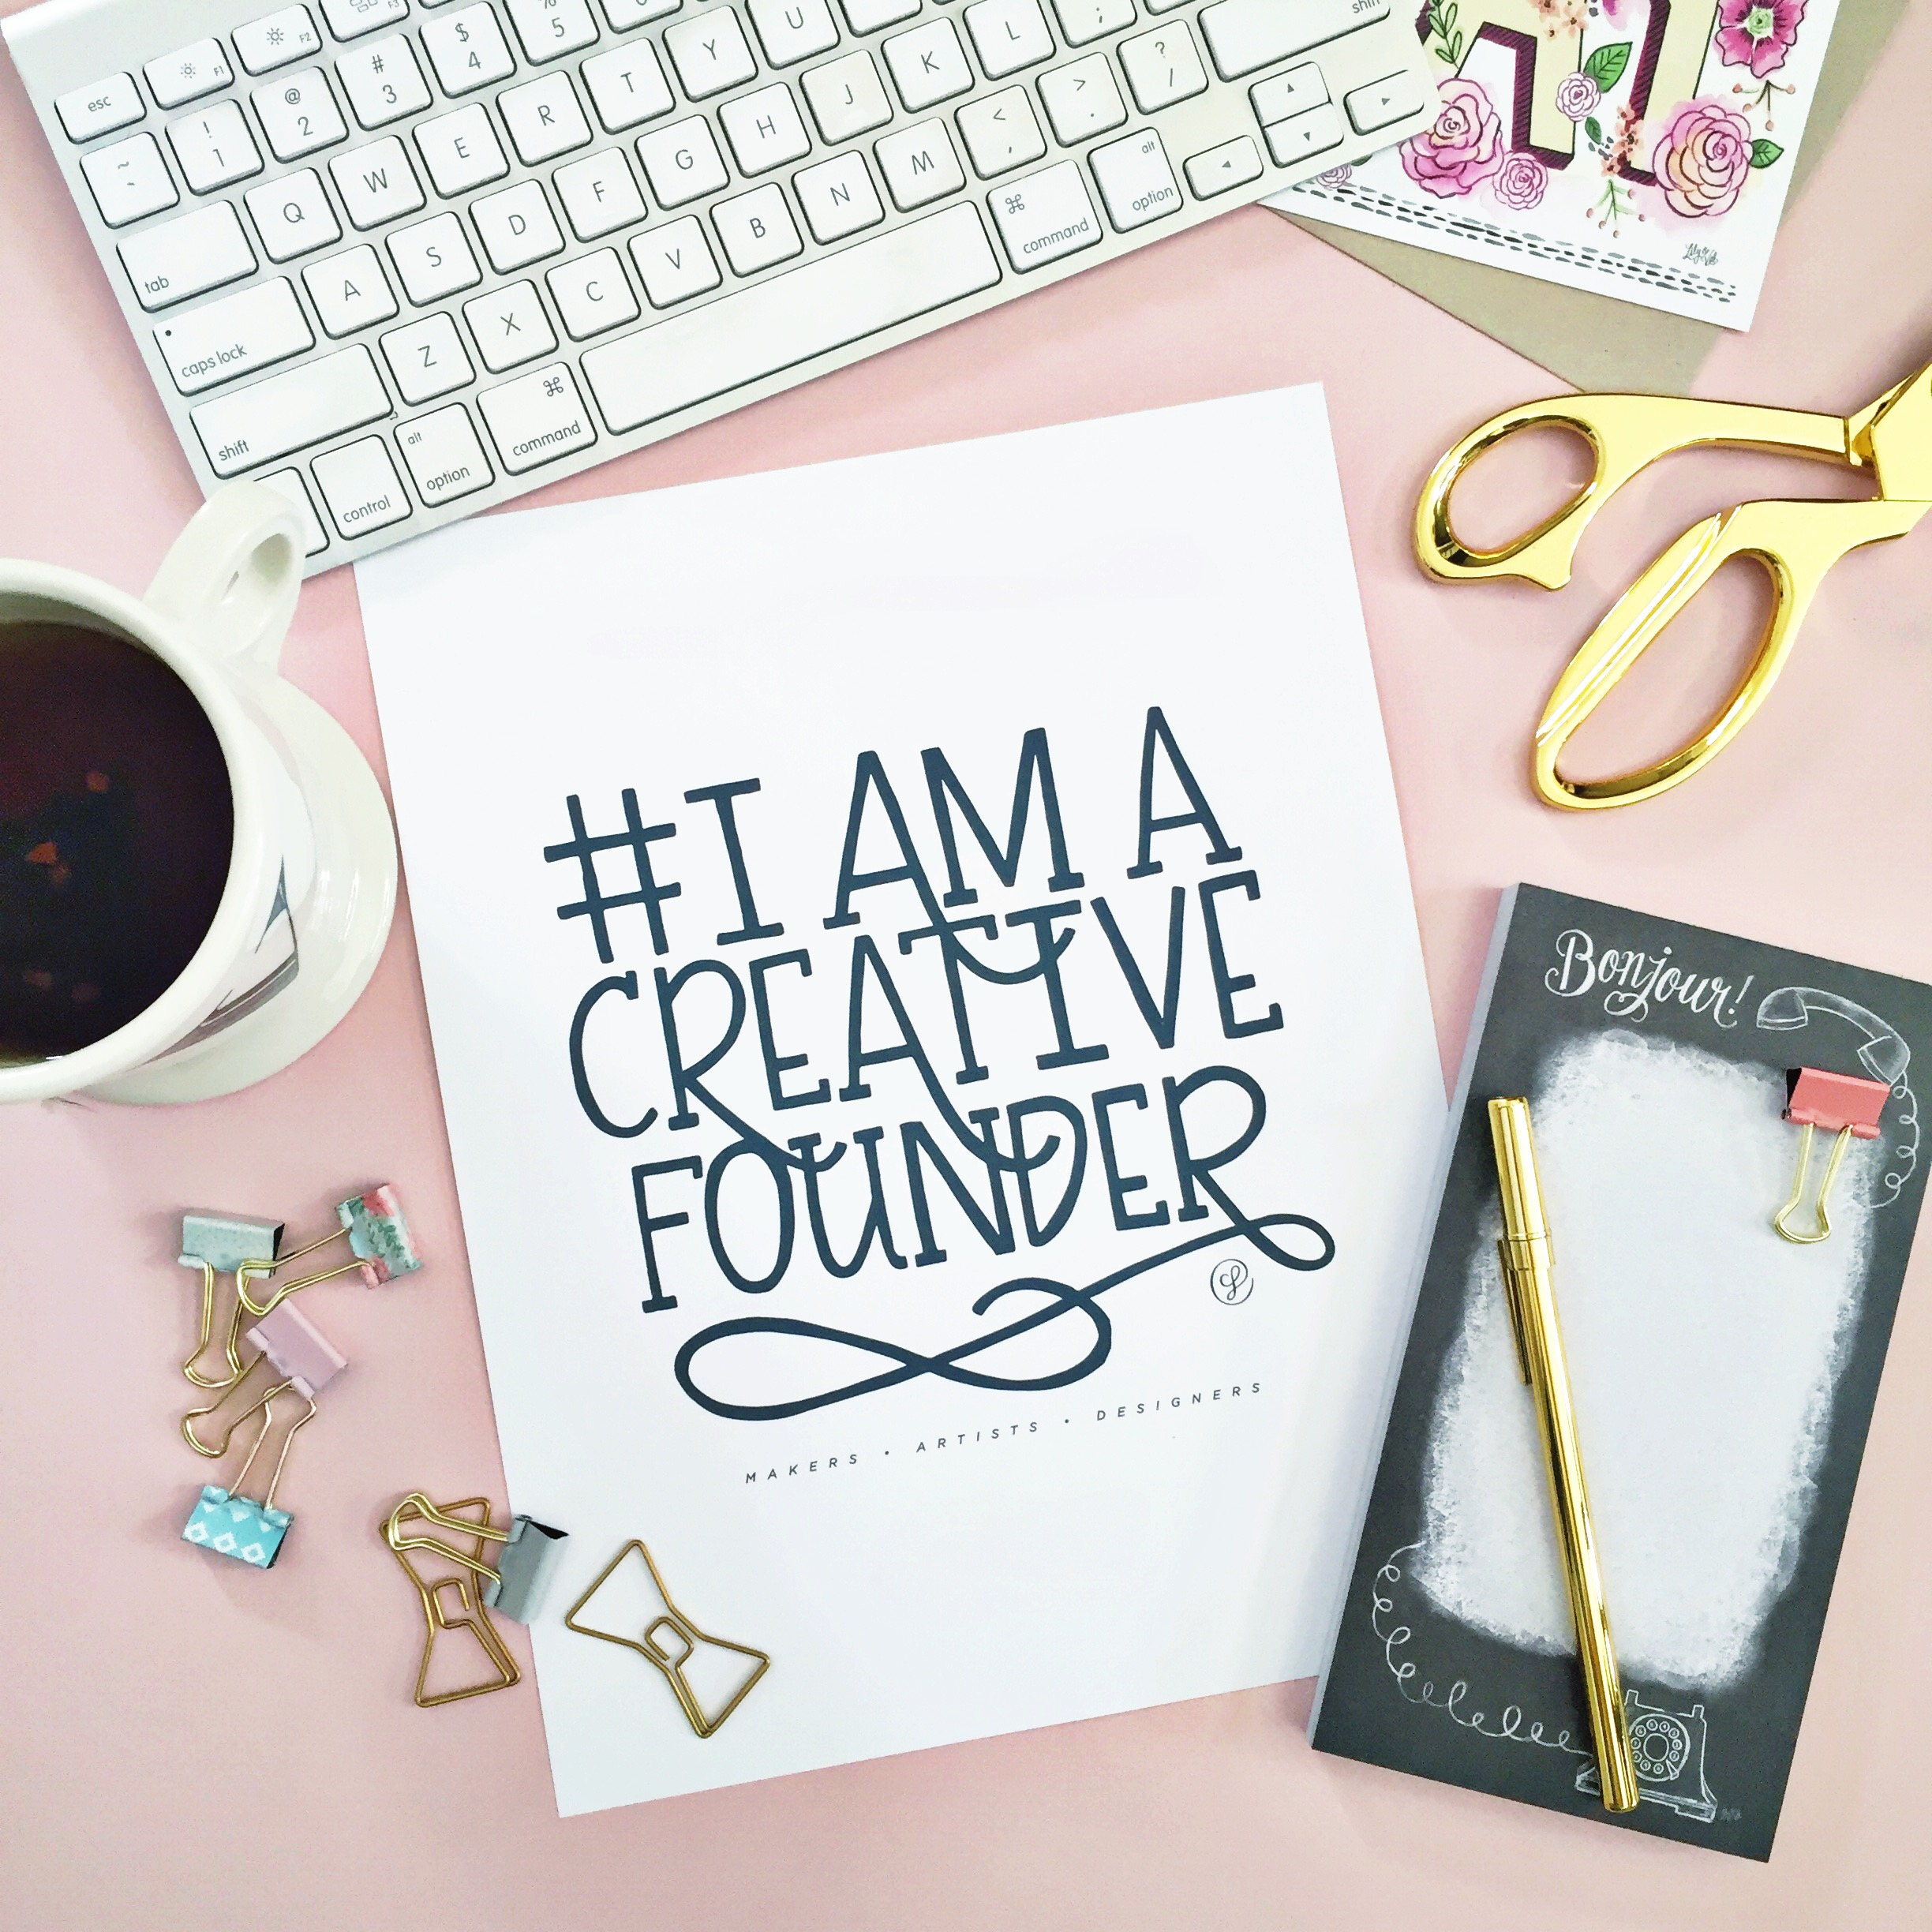 Grow your business like a creative found on the Society For Creative Founders membership website!